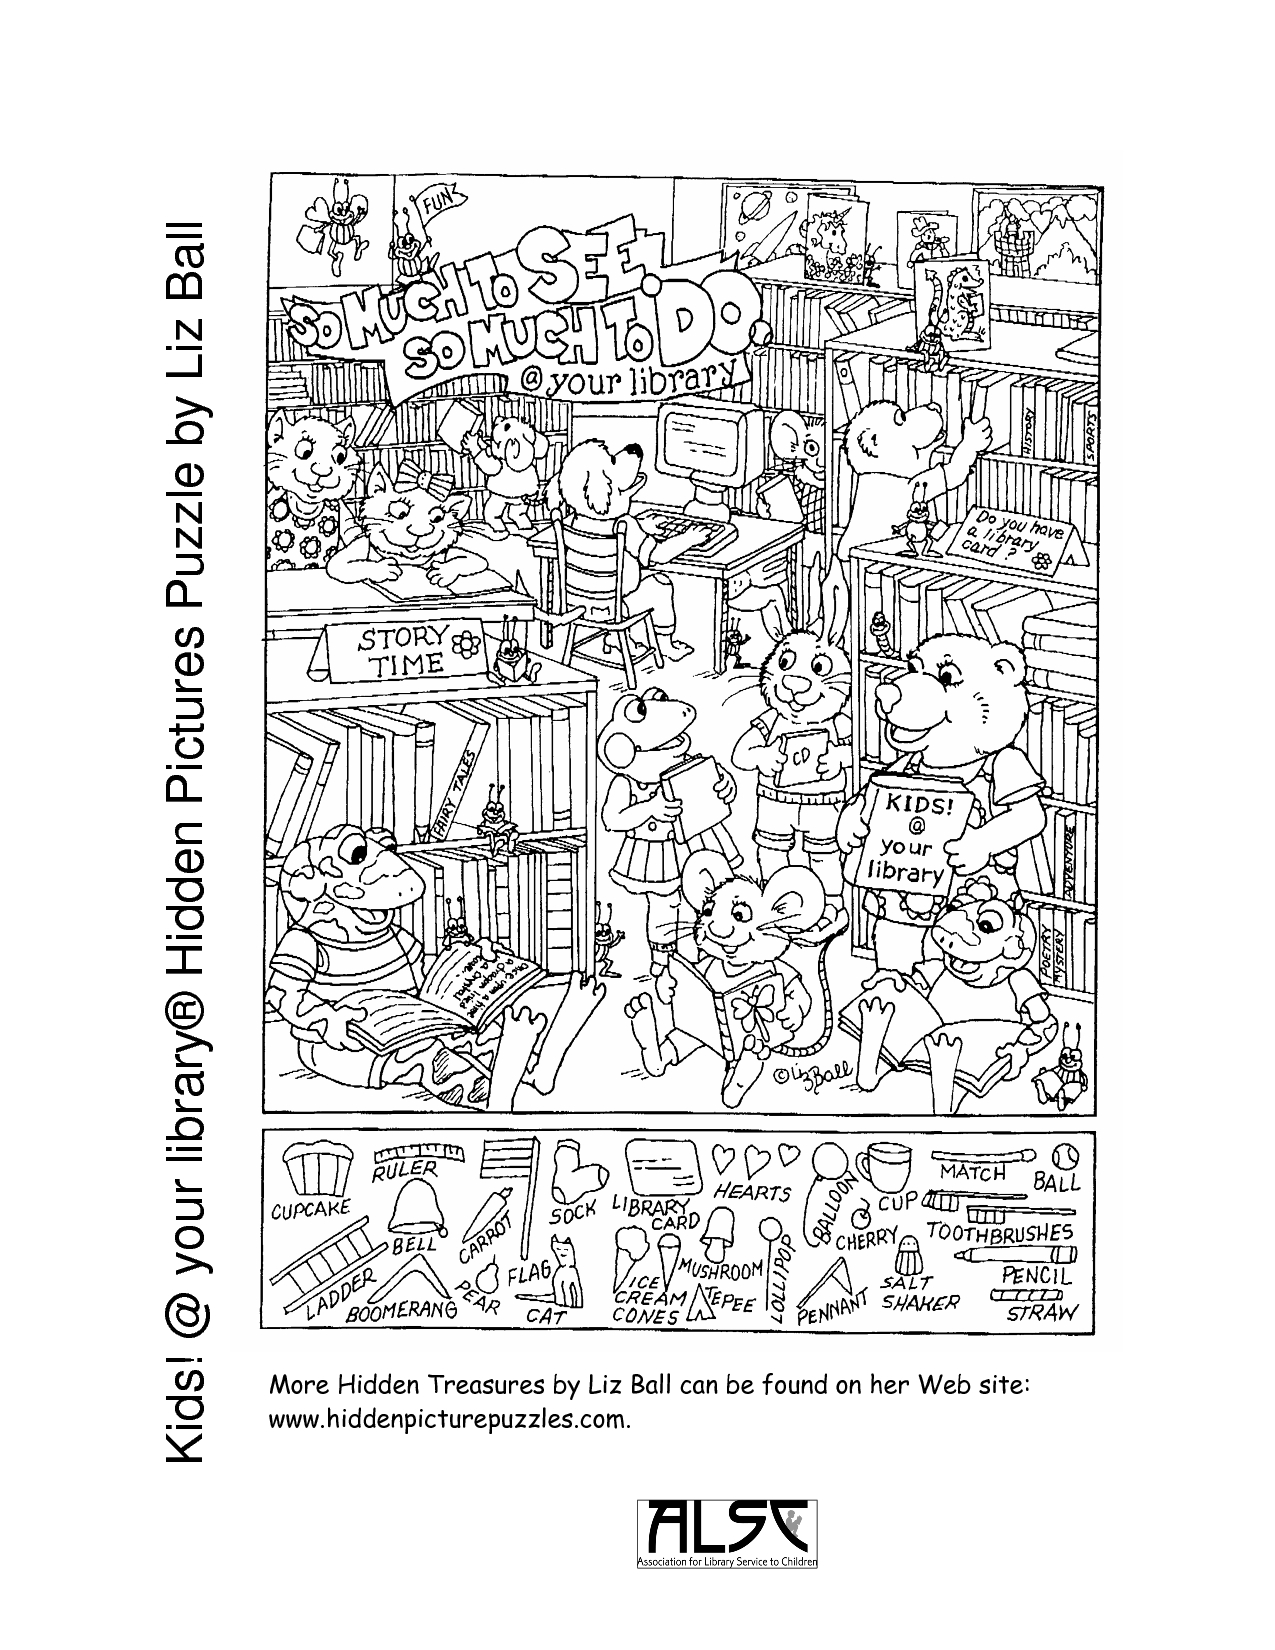 Printable Puzzles For Adults | Kids Your Library® Hidden Pictures - Printable Hidden Object Puzzles For Adults